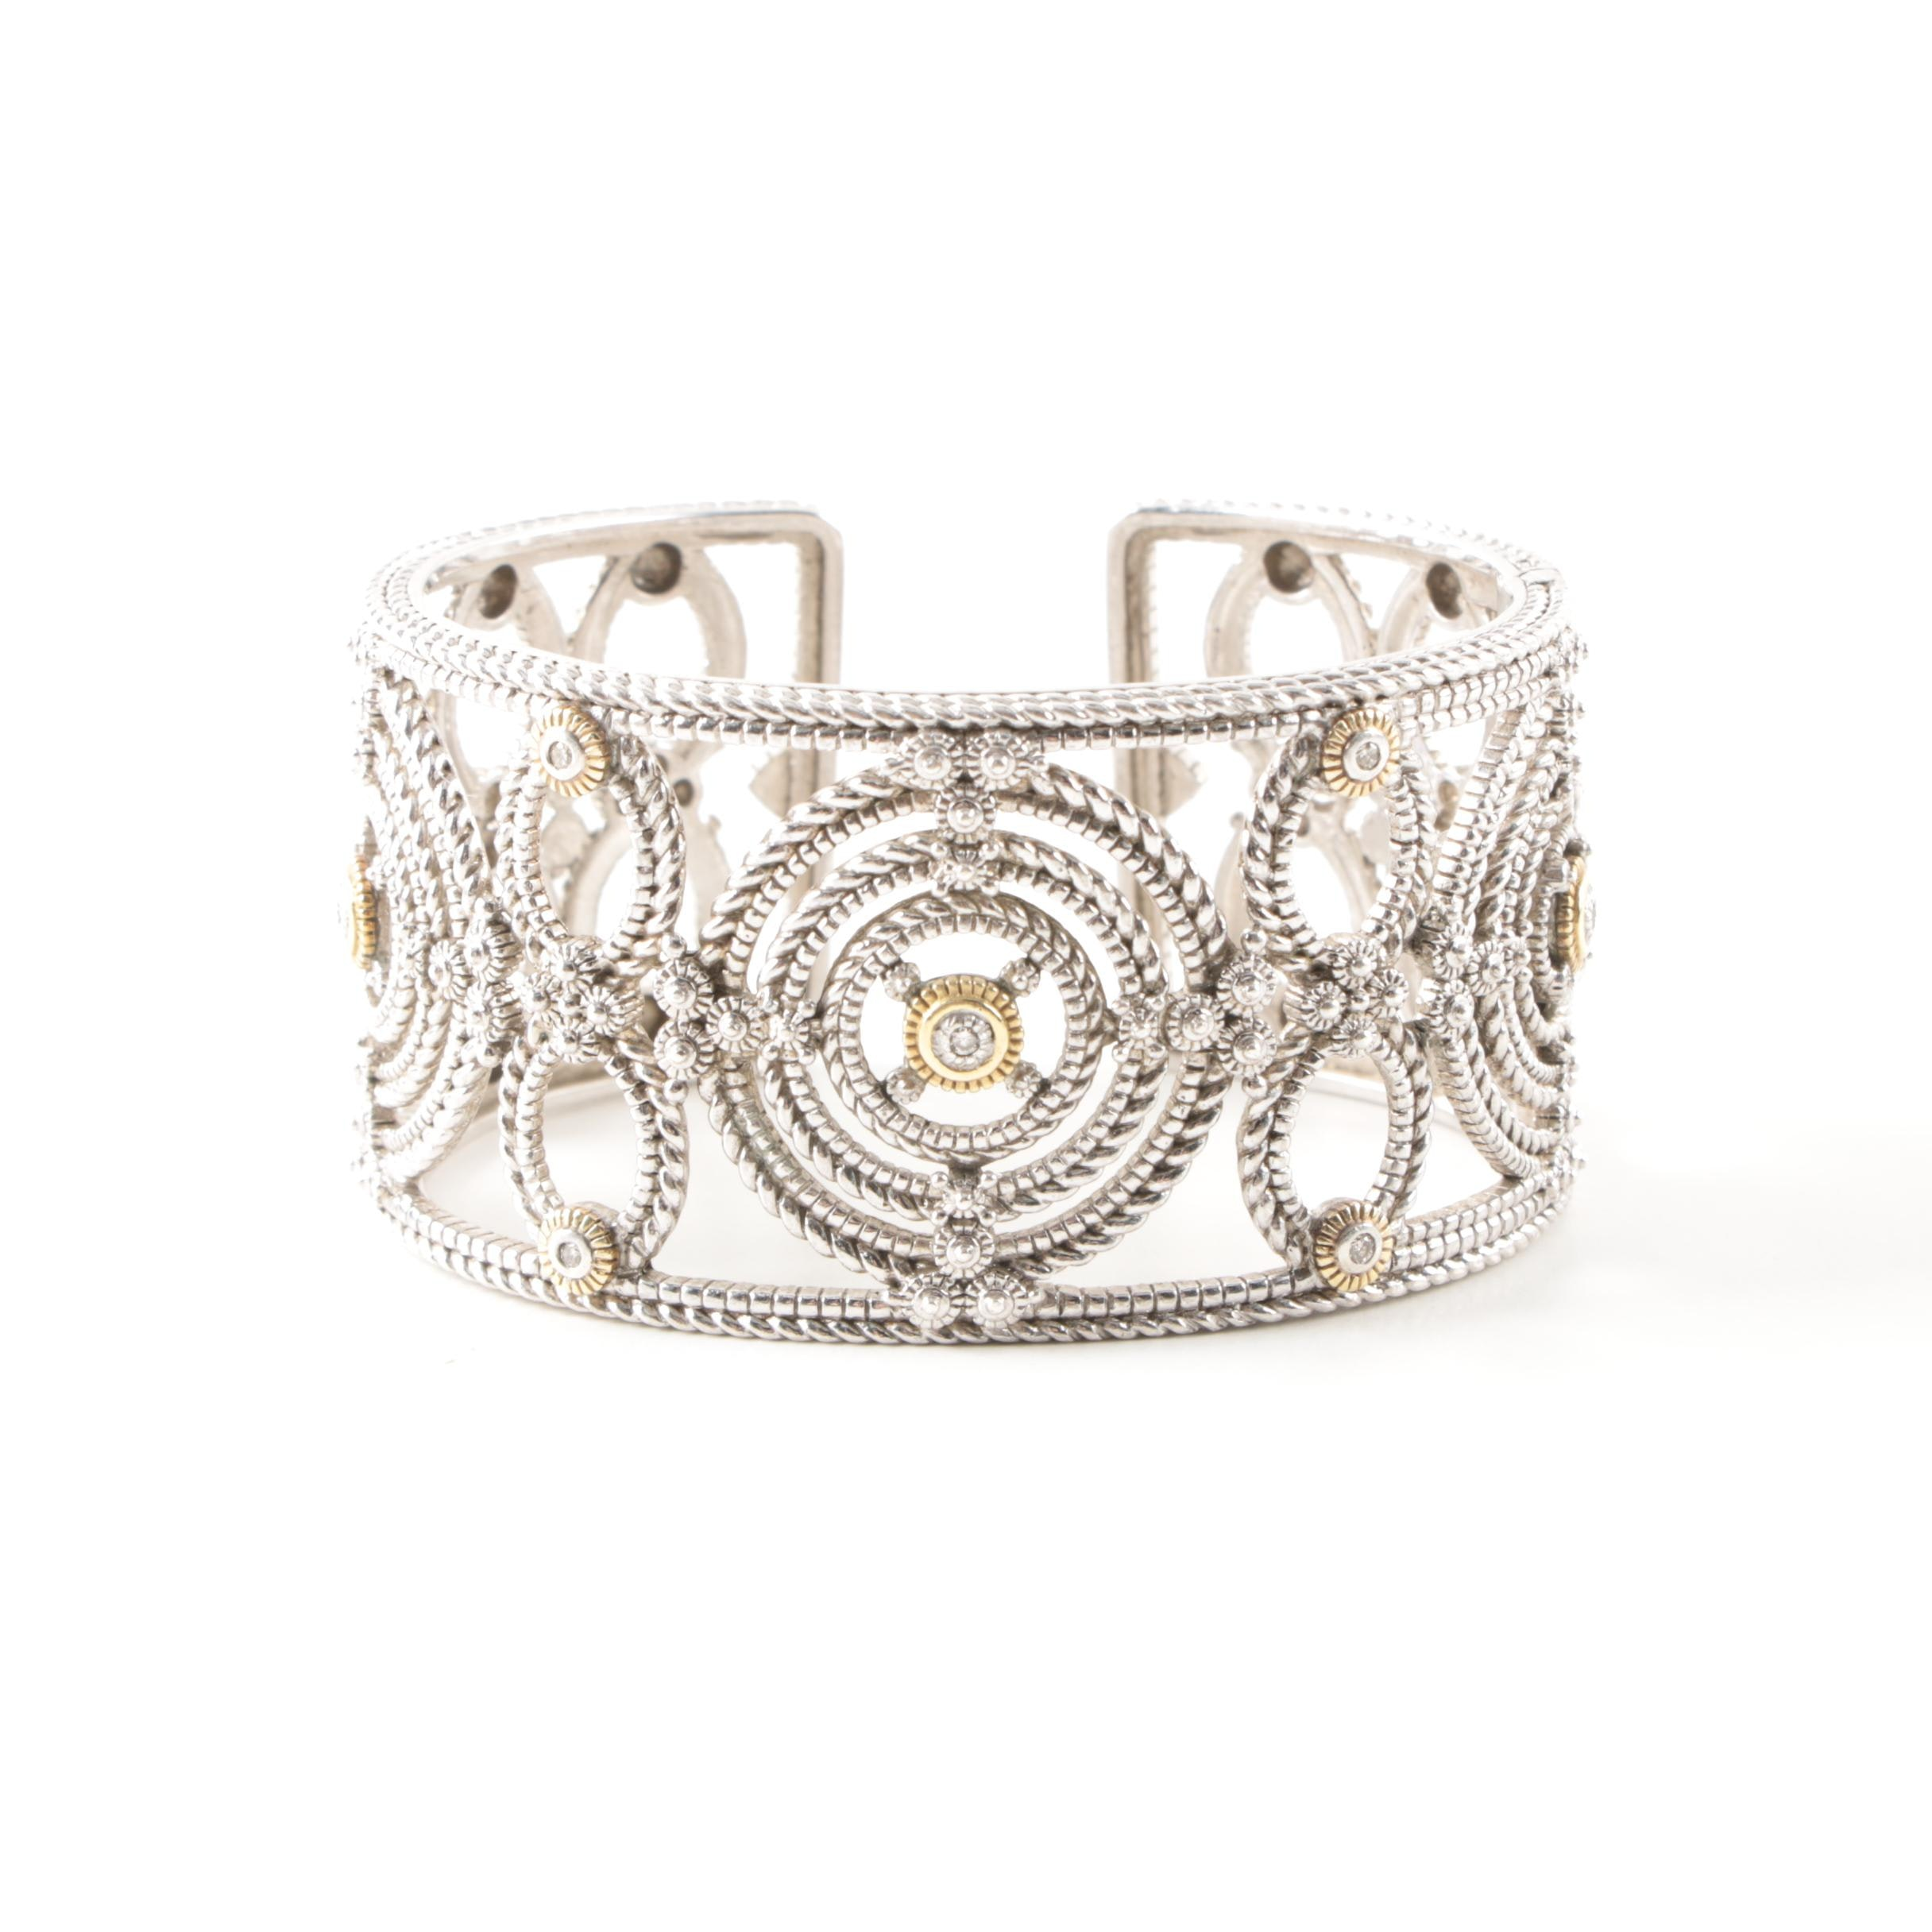 Judith Ripka Sterling Silver Diamond Cuff Bracelet With 18K Yellow Gold Accents